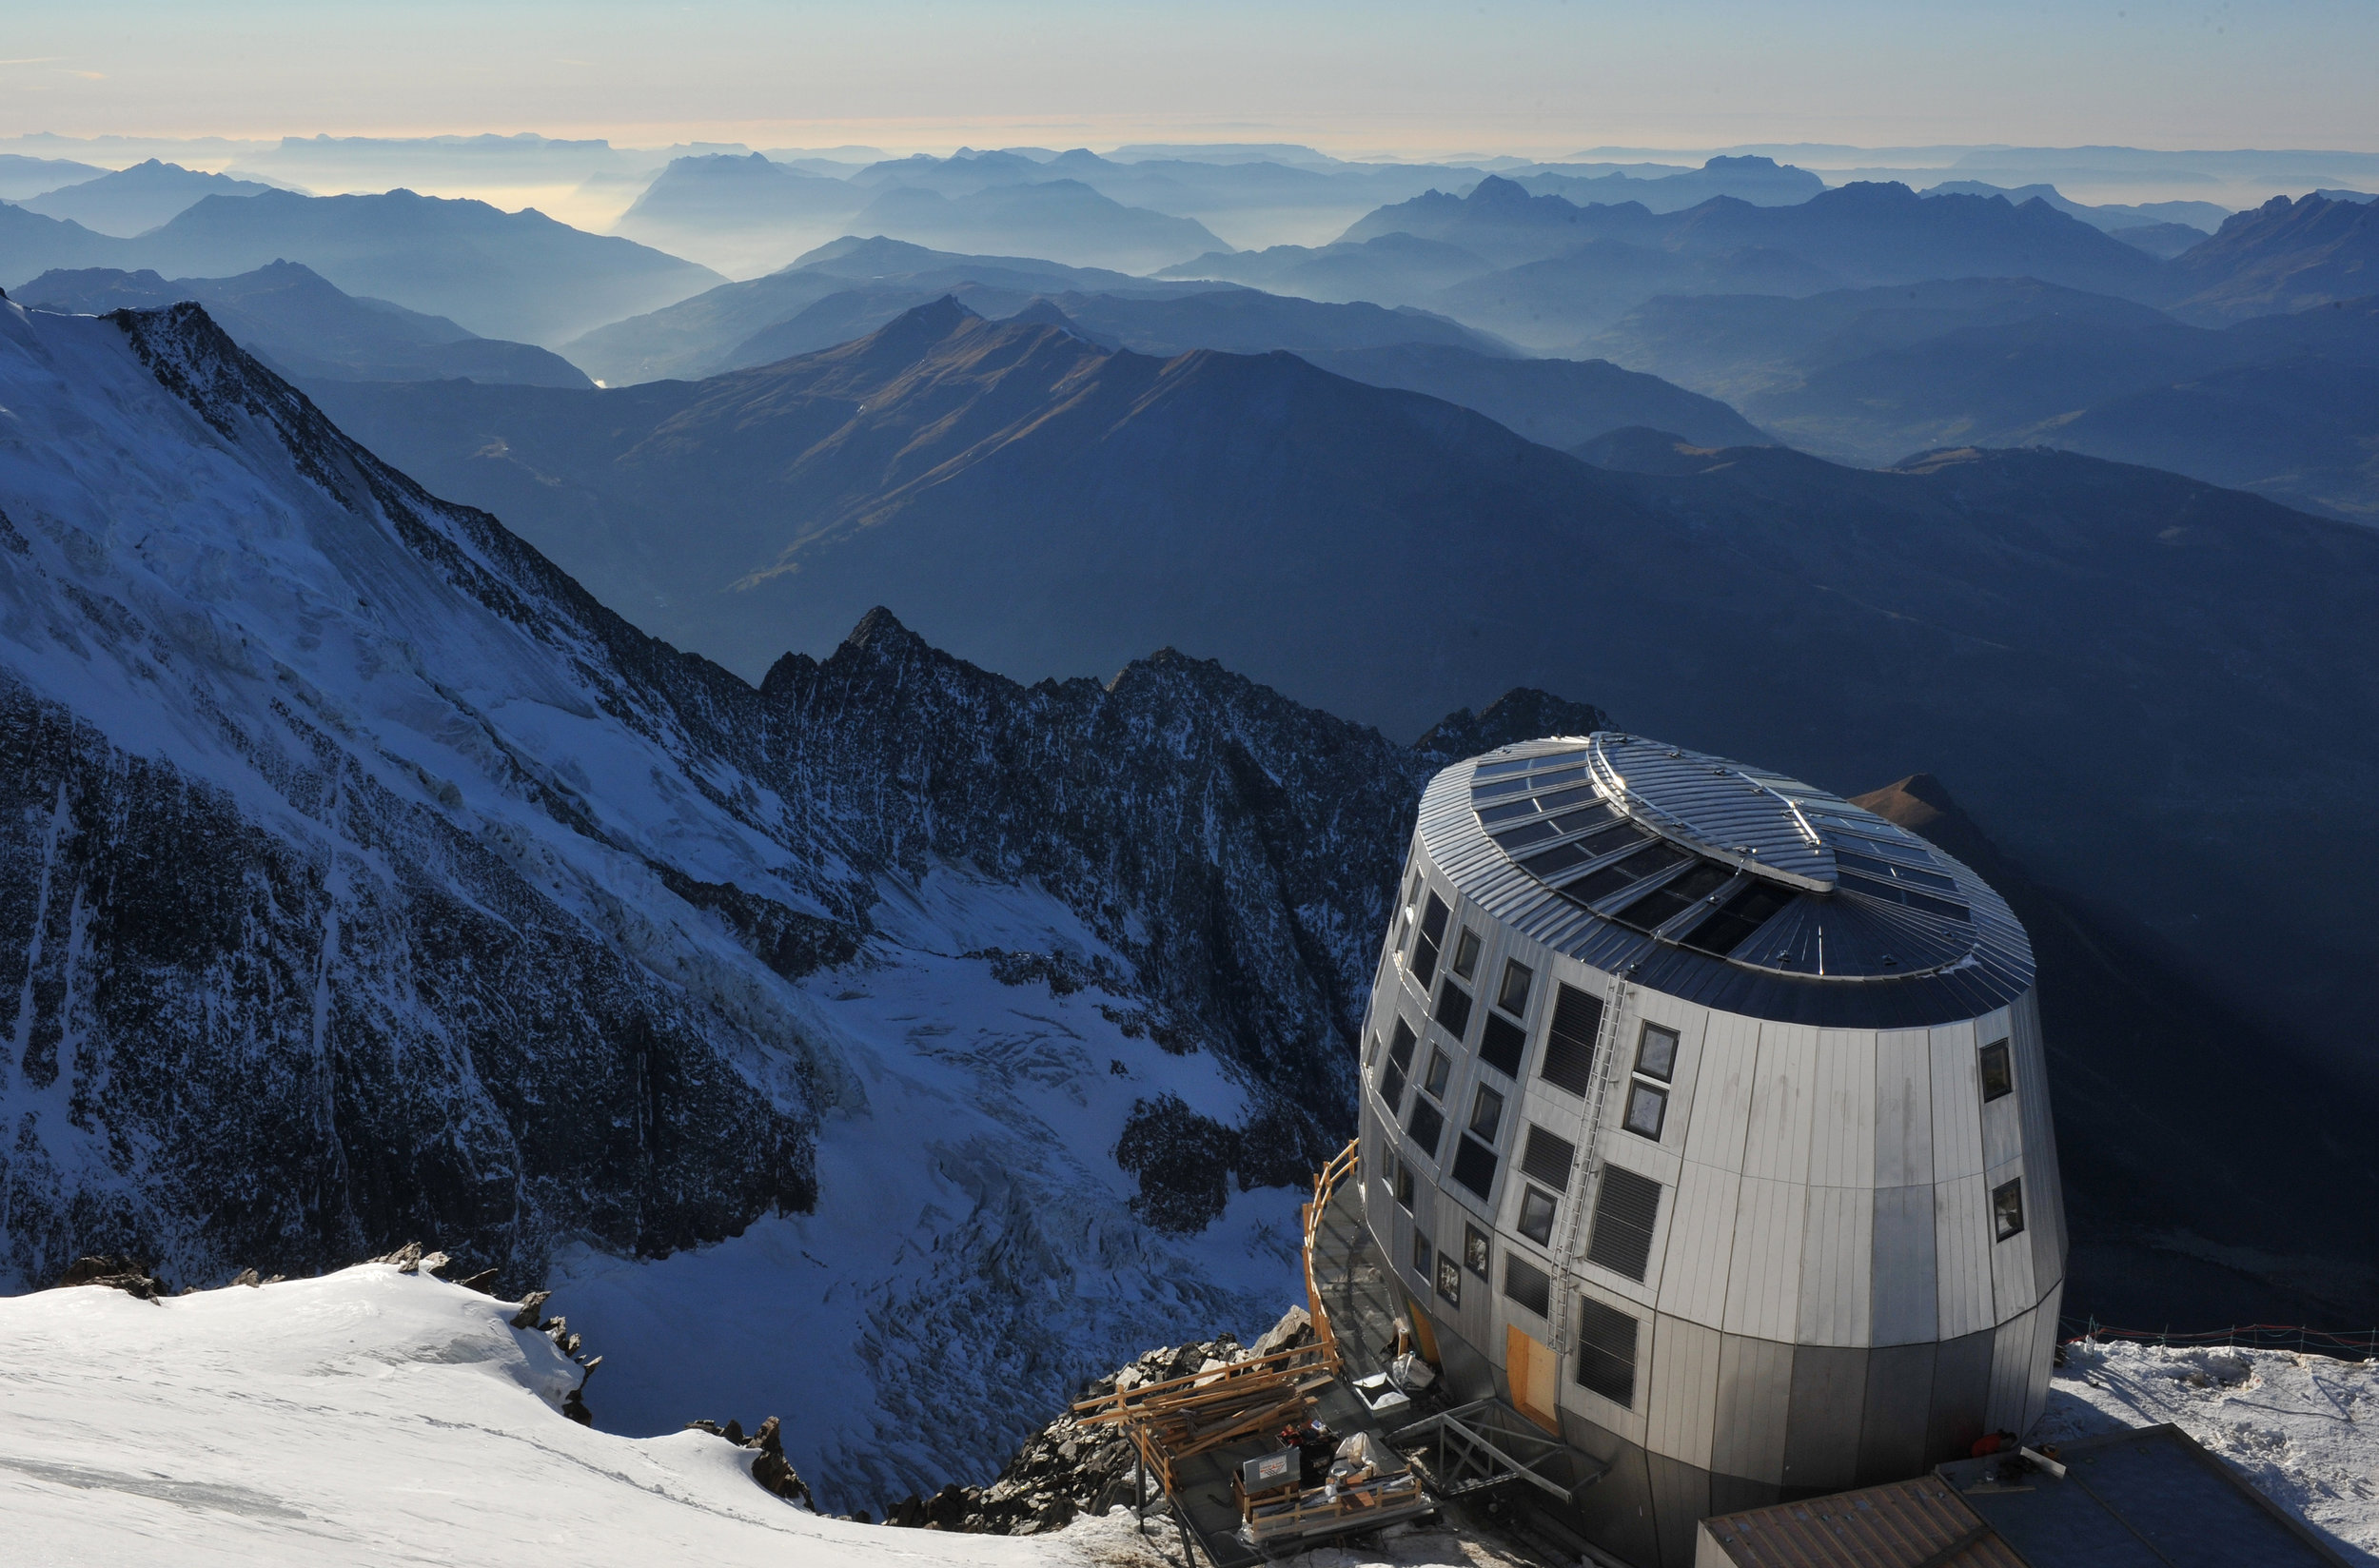 Refuge de Gouter, the highest mountain hut in the French Alps